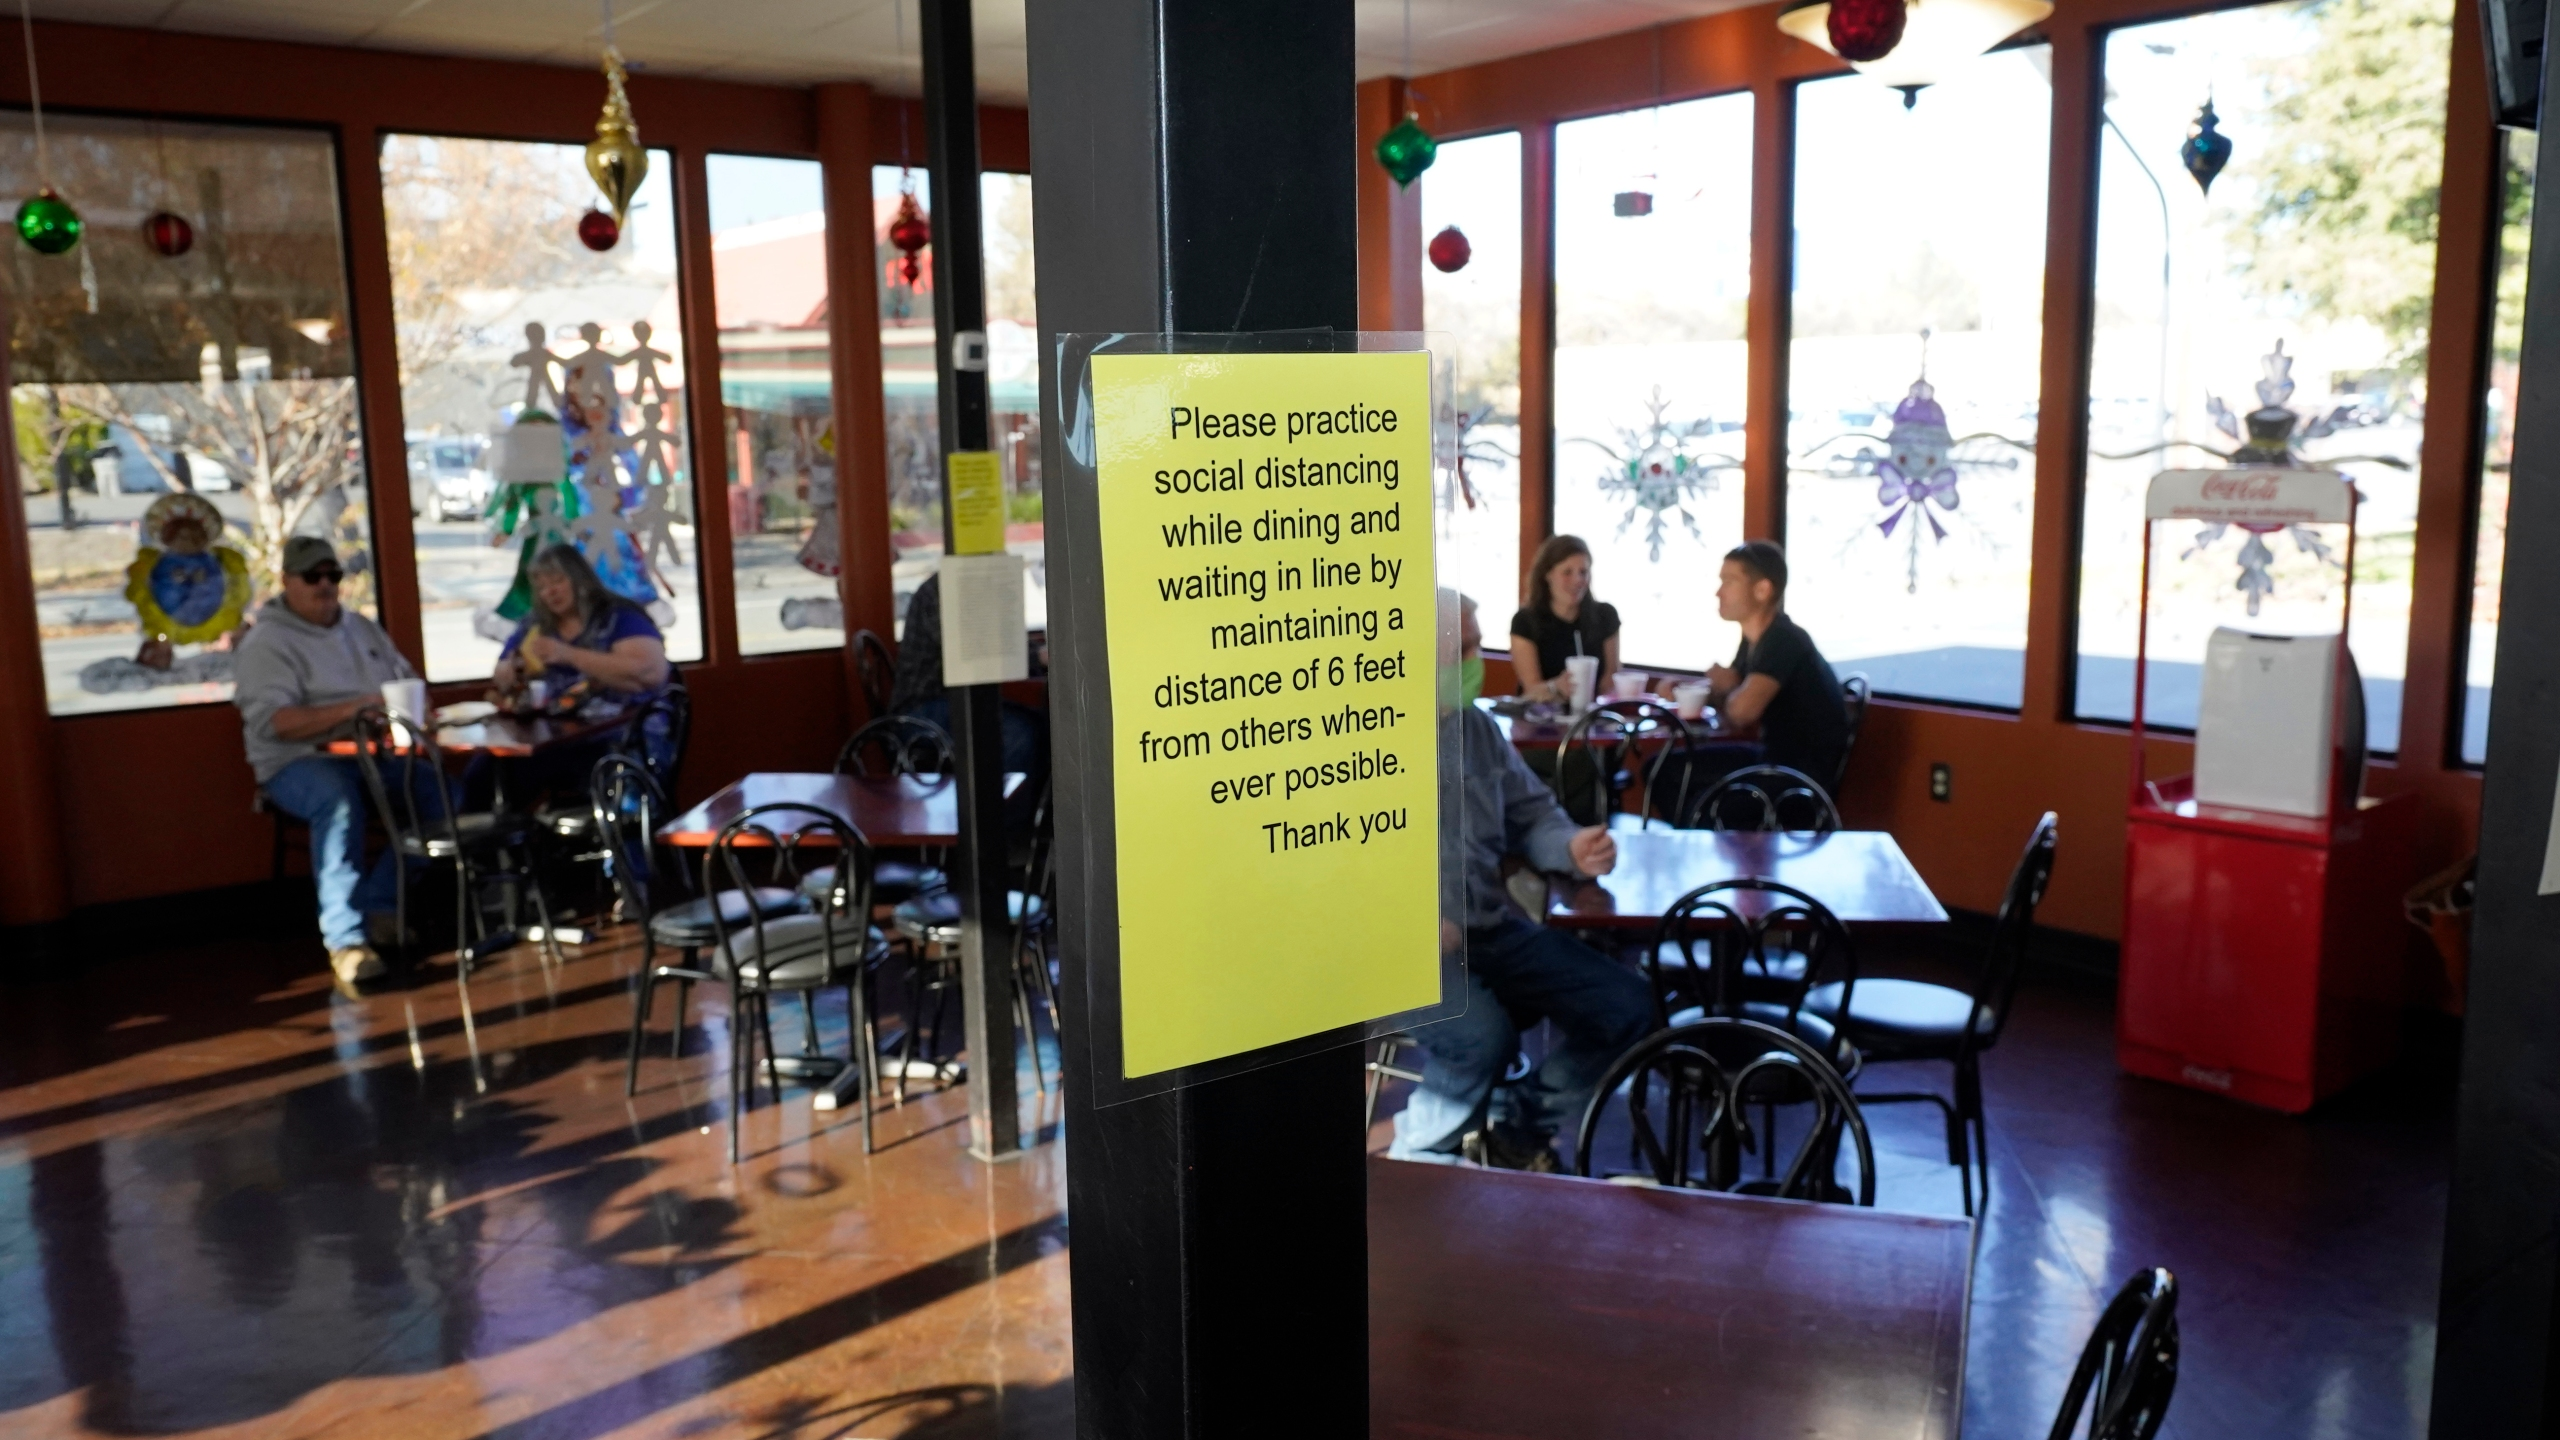 A sign advising patrons to maintain social distancing is posted in the indoor dining area of the San Francisco Deli in Redding, Calif., Thursday, Dec. 3, 2020. Brenda Luntey, who owns the deli with her husband, is openly violating the state's order to close her restaurant to indoor dining. She takes all the precautions advised, but doesn't force customers to wear a face mask. Luntey wants her customers and critics to know she is not a rule-breaker, and that it's a matter of survival. (AP Photo/Rich Pedroncelli)